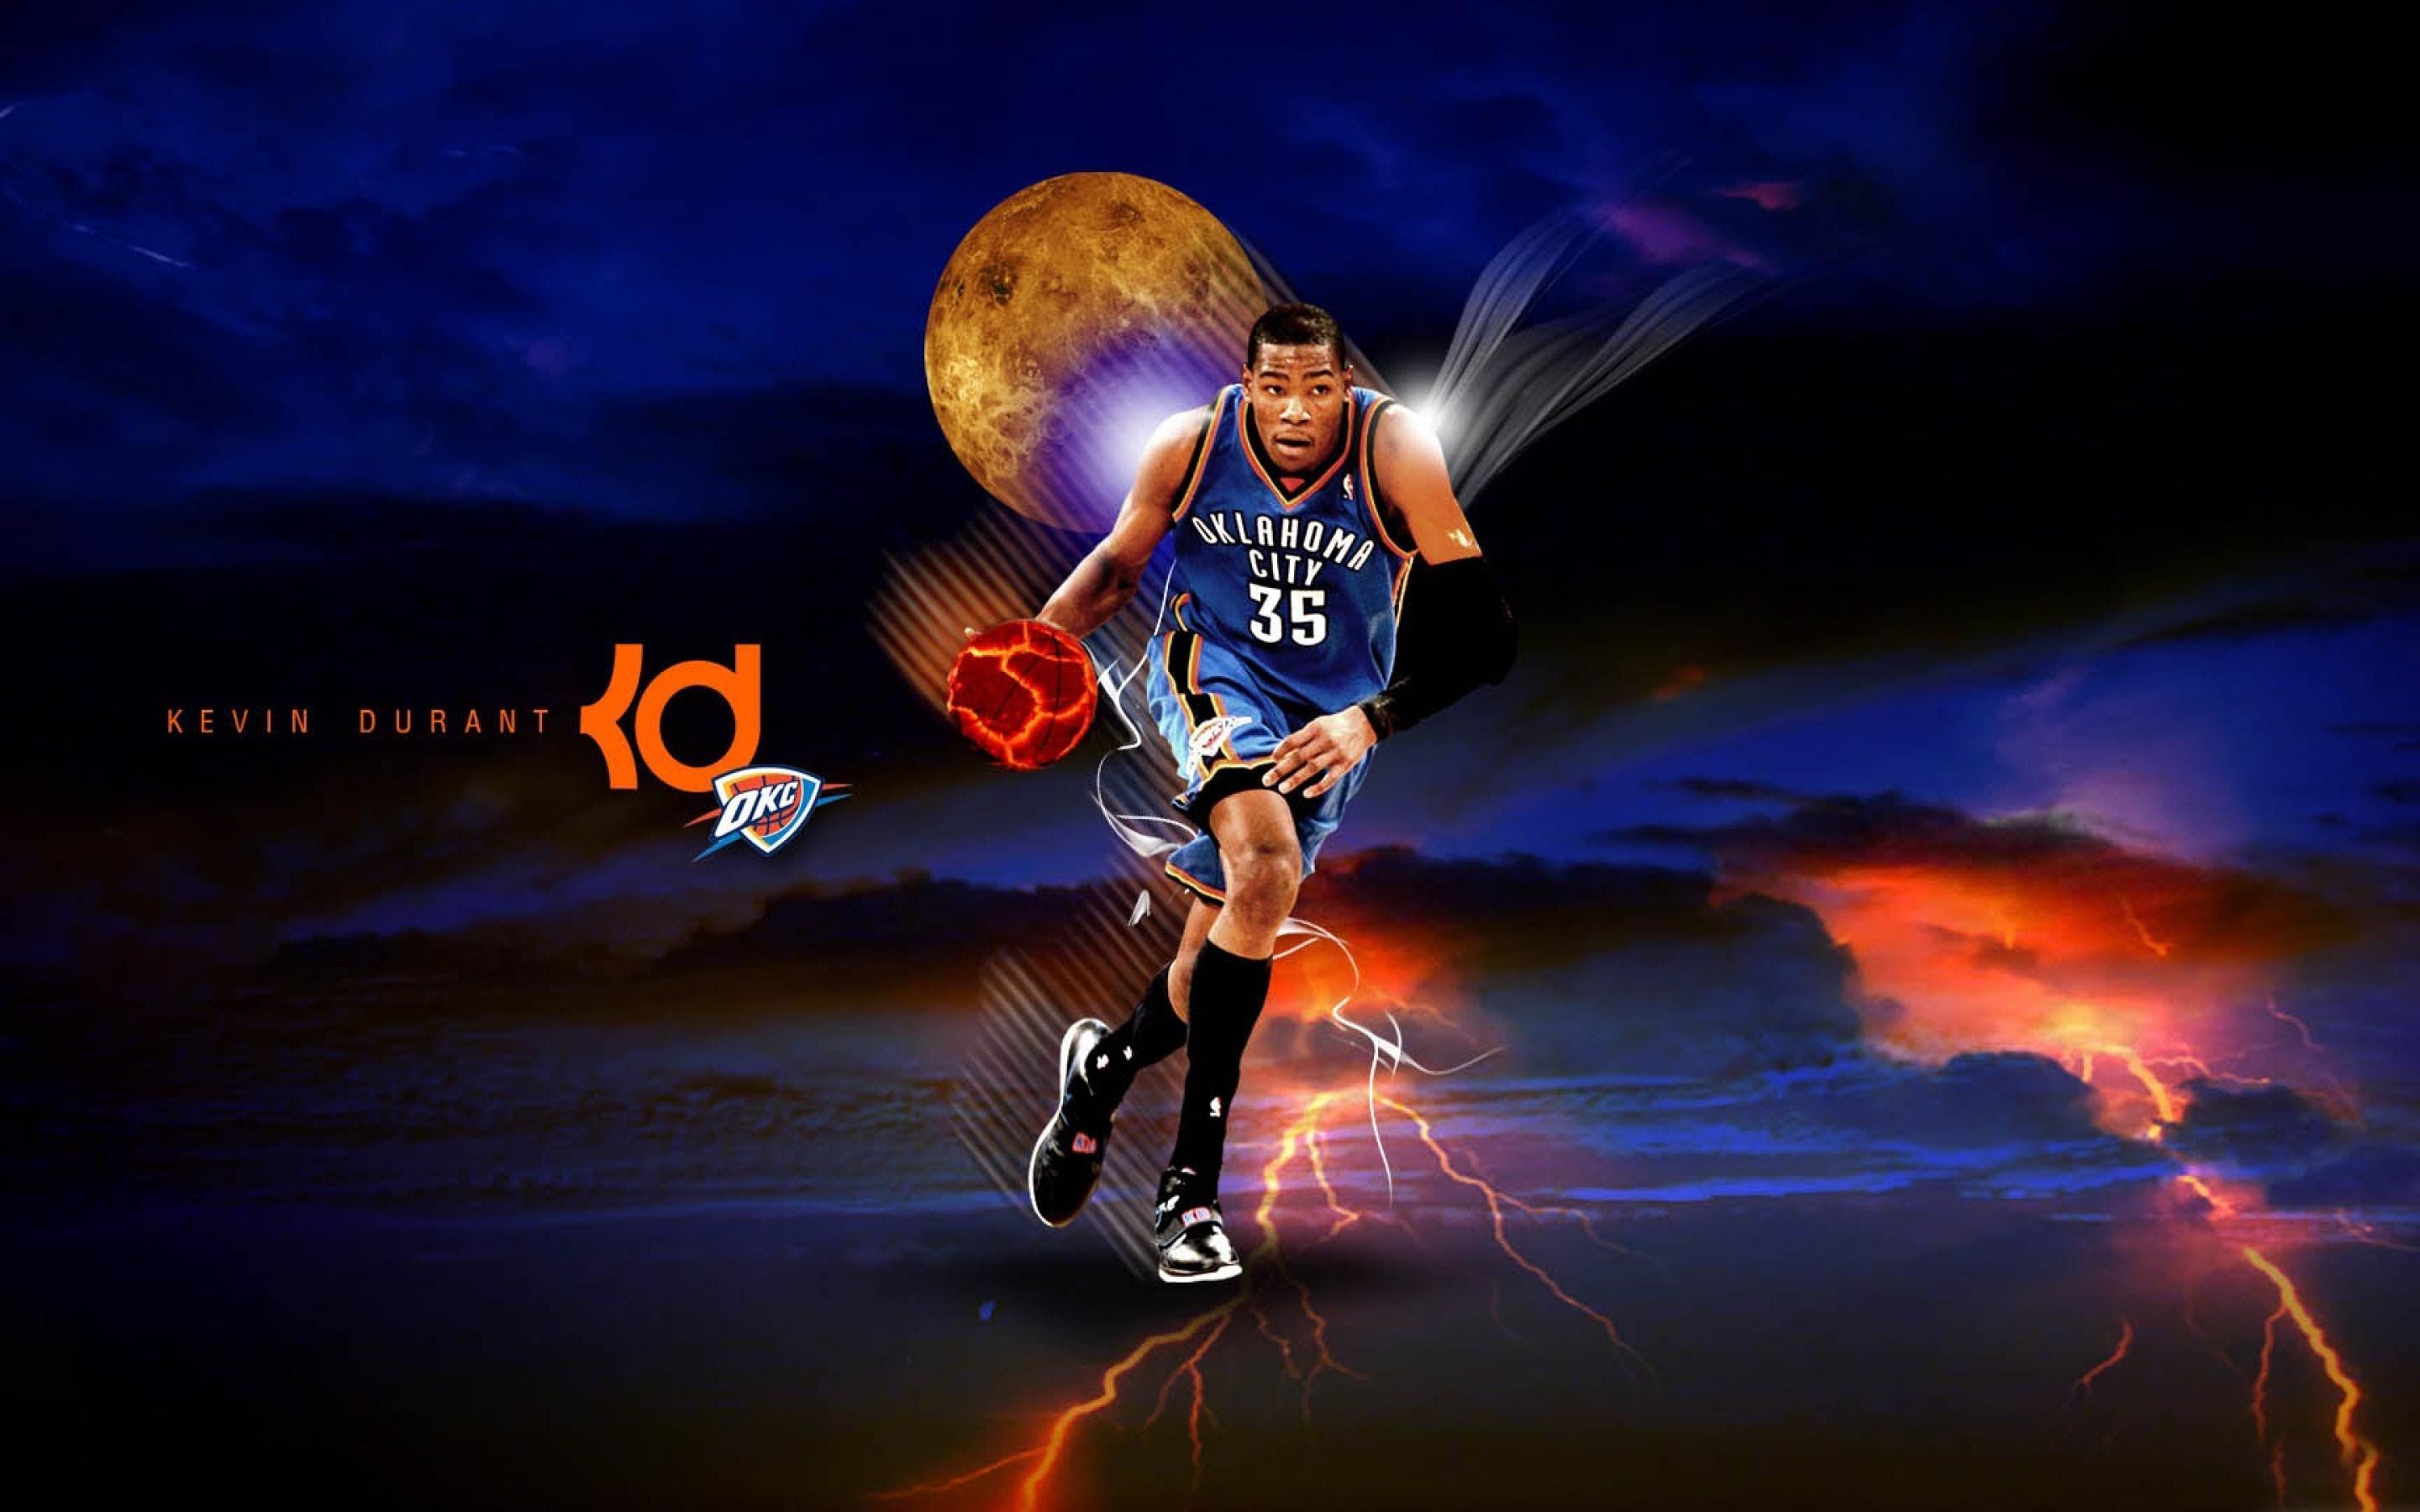 Kevin Durant Dunk Wallpapers 2015 2880x1800